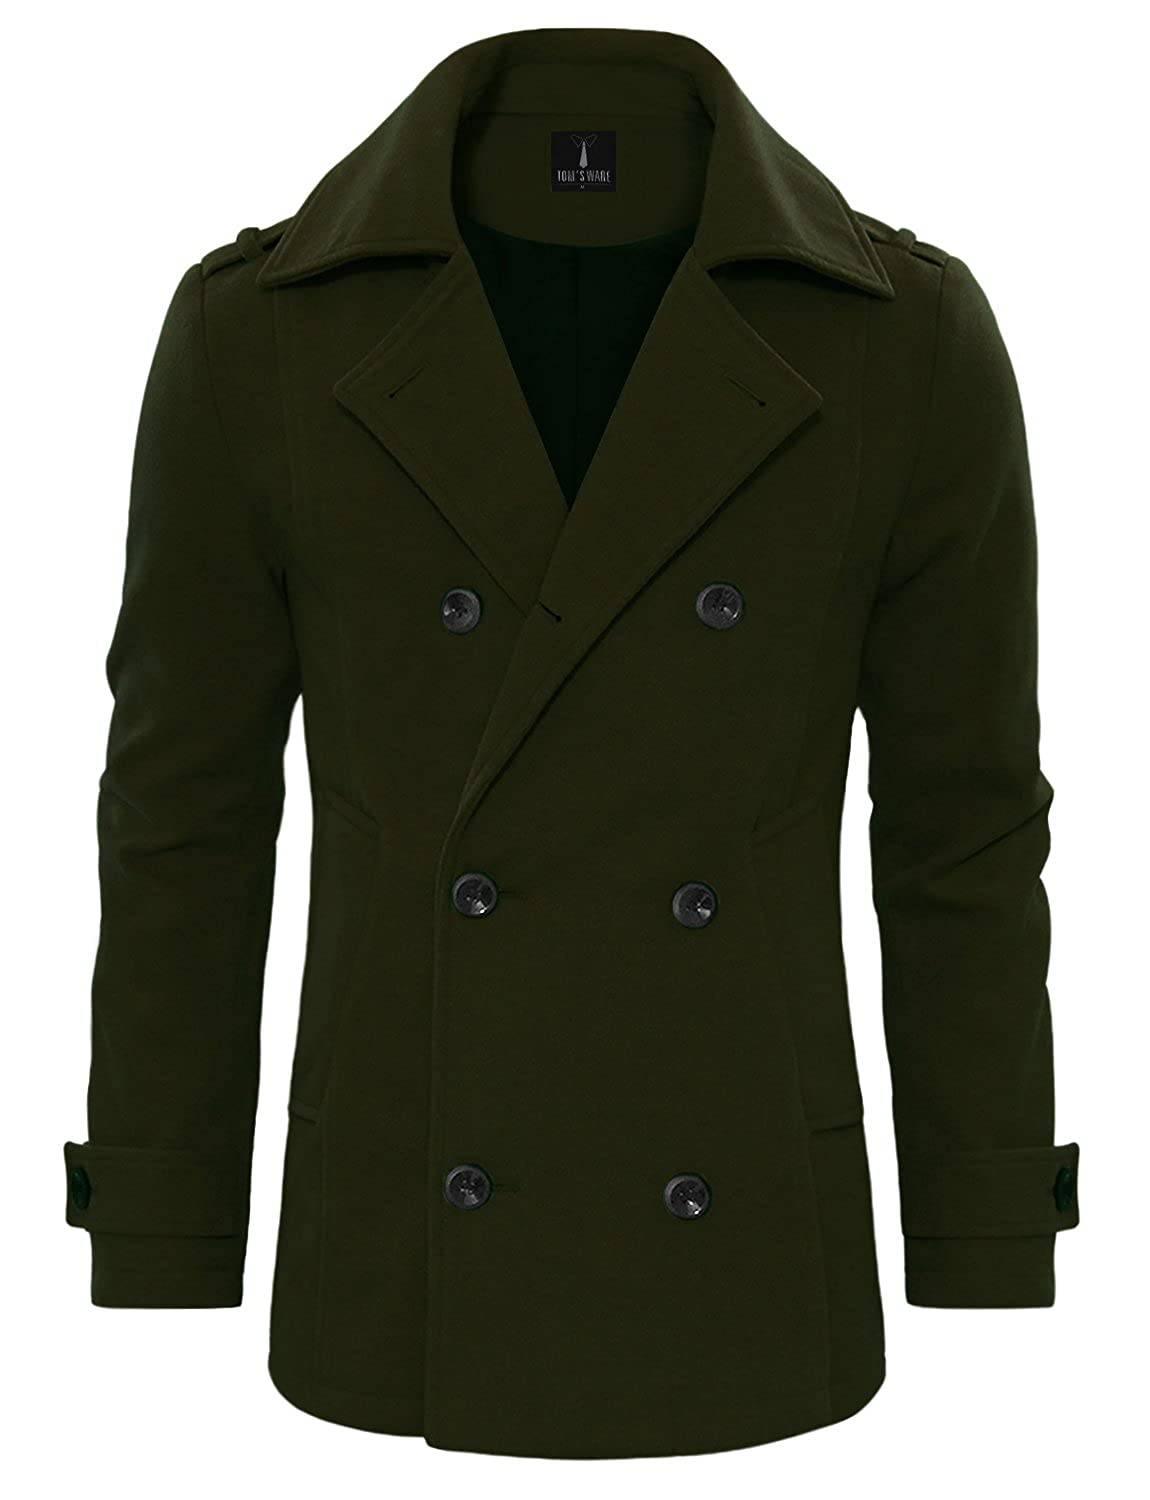 TAM Ware Men's Stylish Wool Blend Double Breasted Pea Coat TWCC10